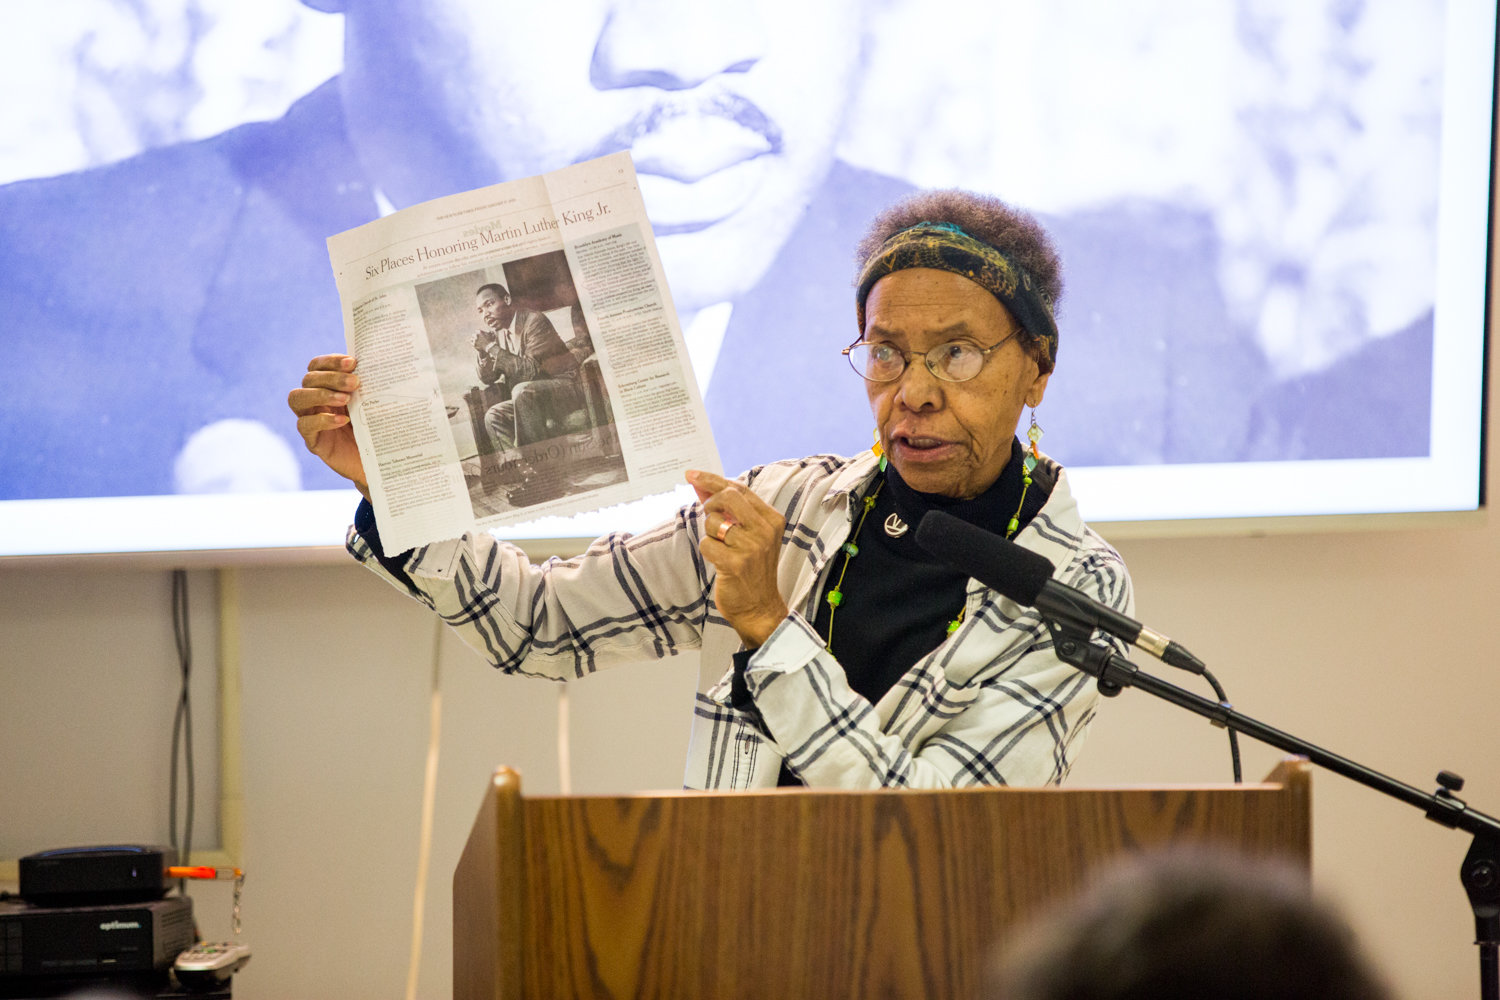 Ernece Kelly holds up a newspaper story about Dr. Martin Luther King Jr., during a presentation last week at RSS-Riverdale Senior Services. Kelly worked for King in Chicago.